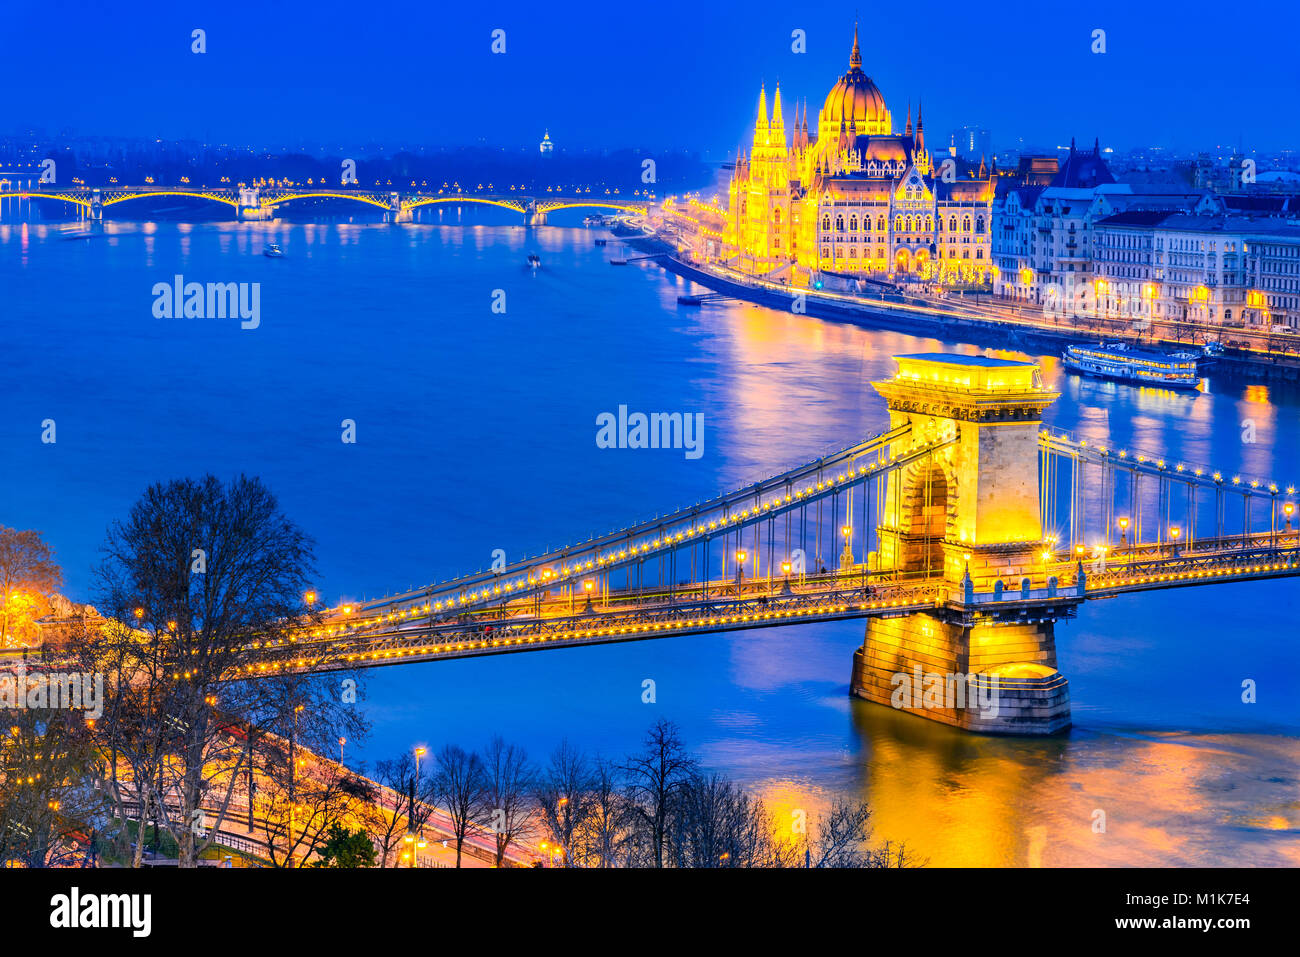 Budapest, Hungary. Szechenyi Chain Bridge and Hungarian Parliament Building over Danube River. - Stock Image